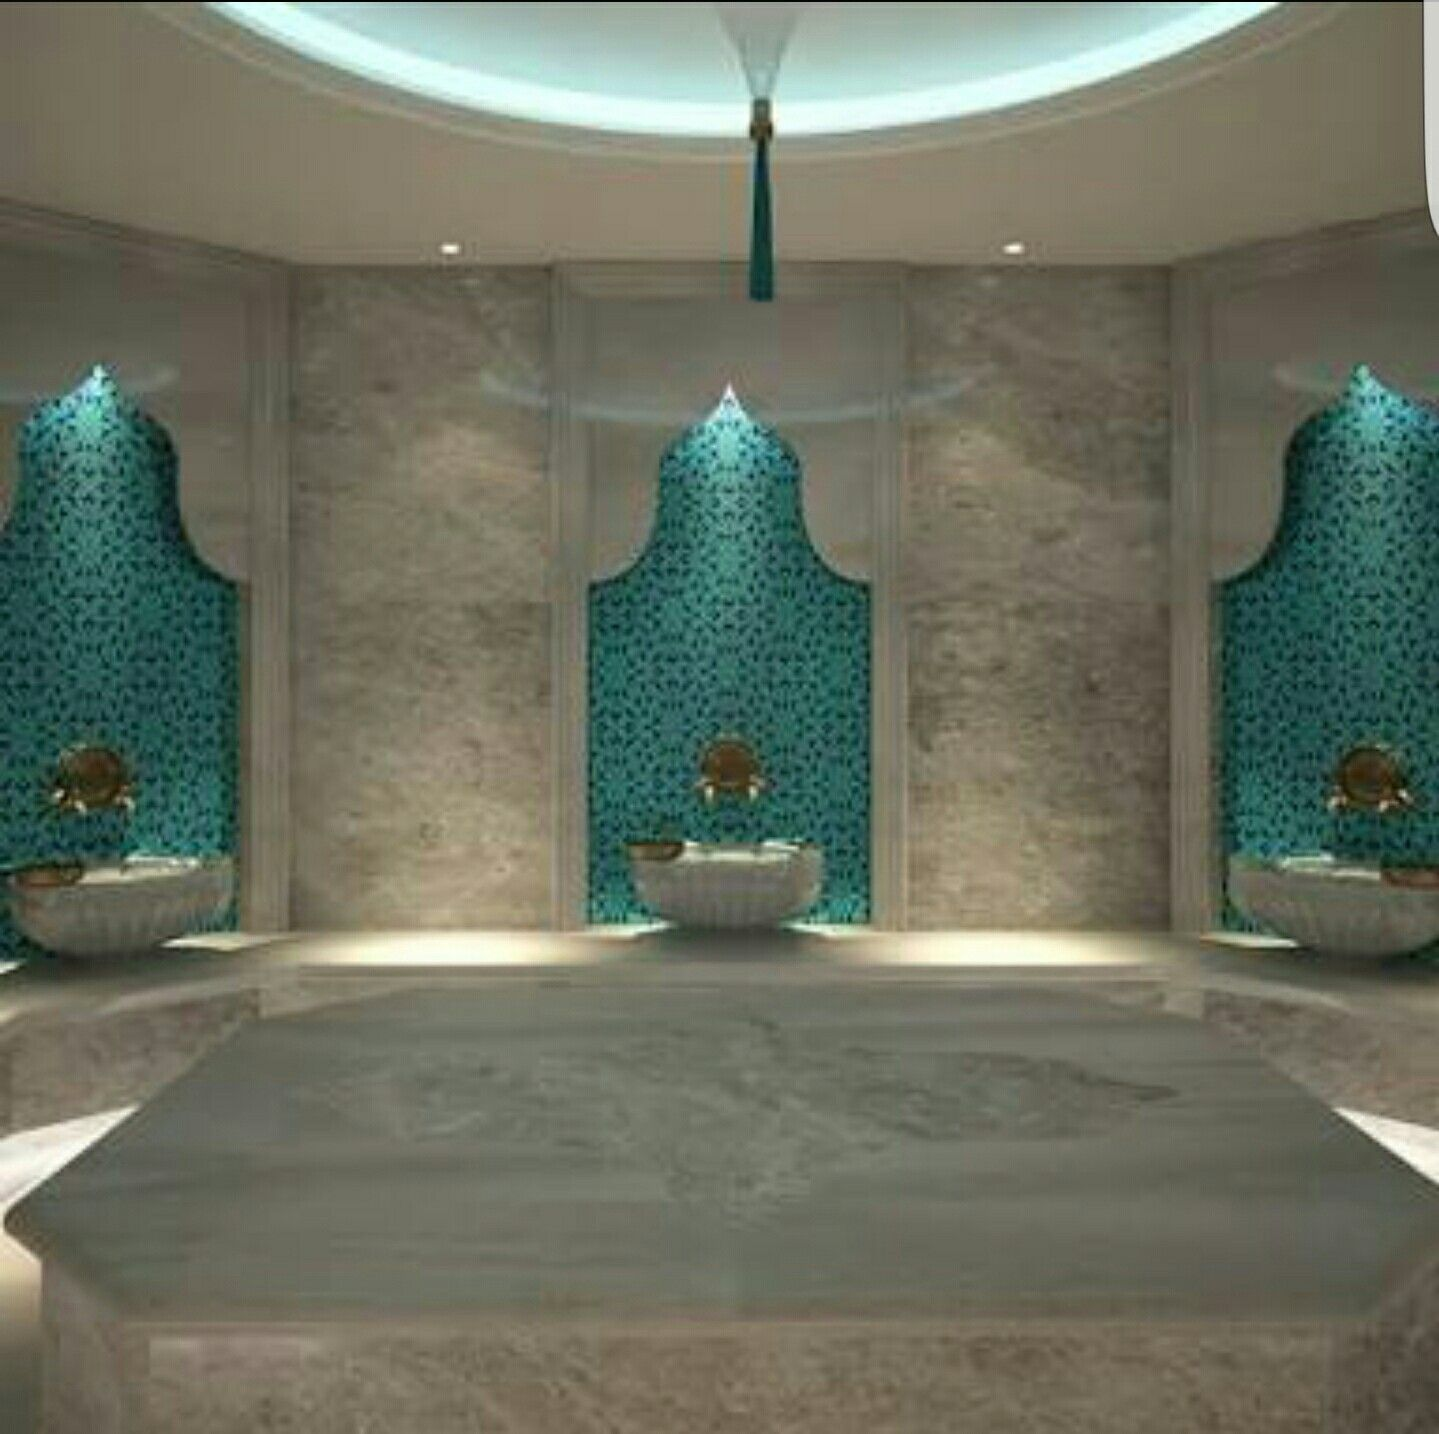 Turkish Bath, Dream Apartment, Master Bathroom, Spas, Bathrooms, Pools, Room